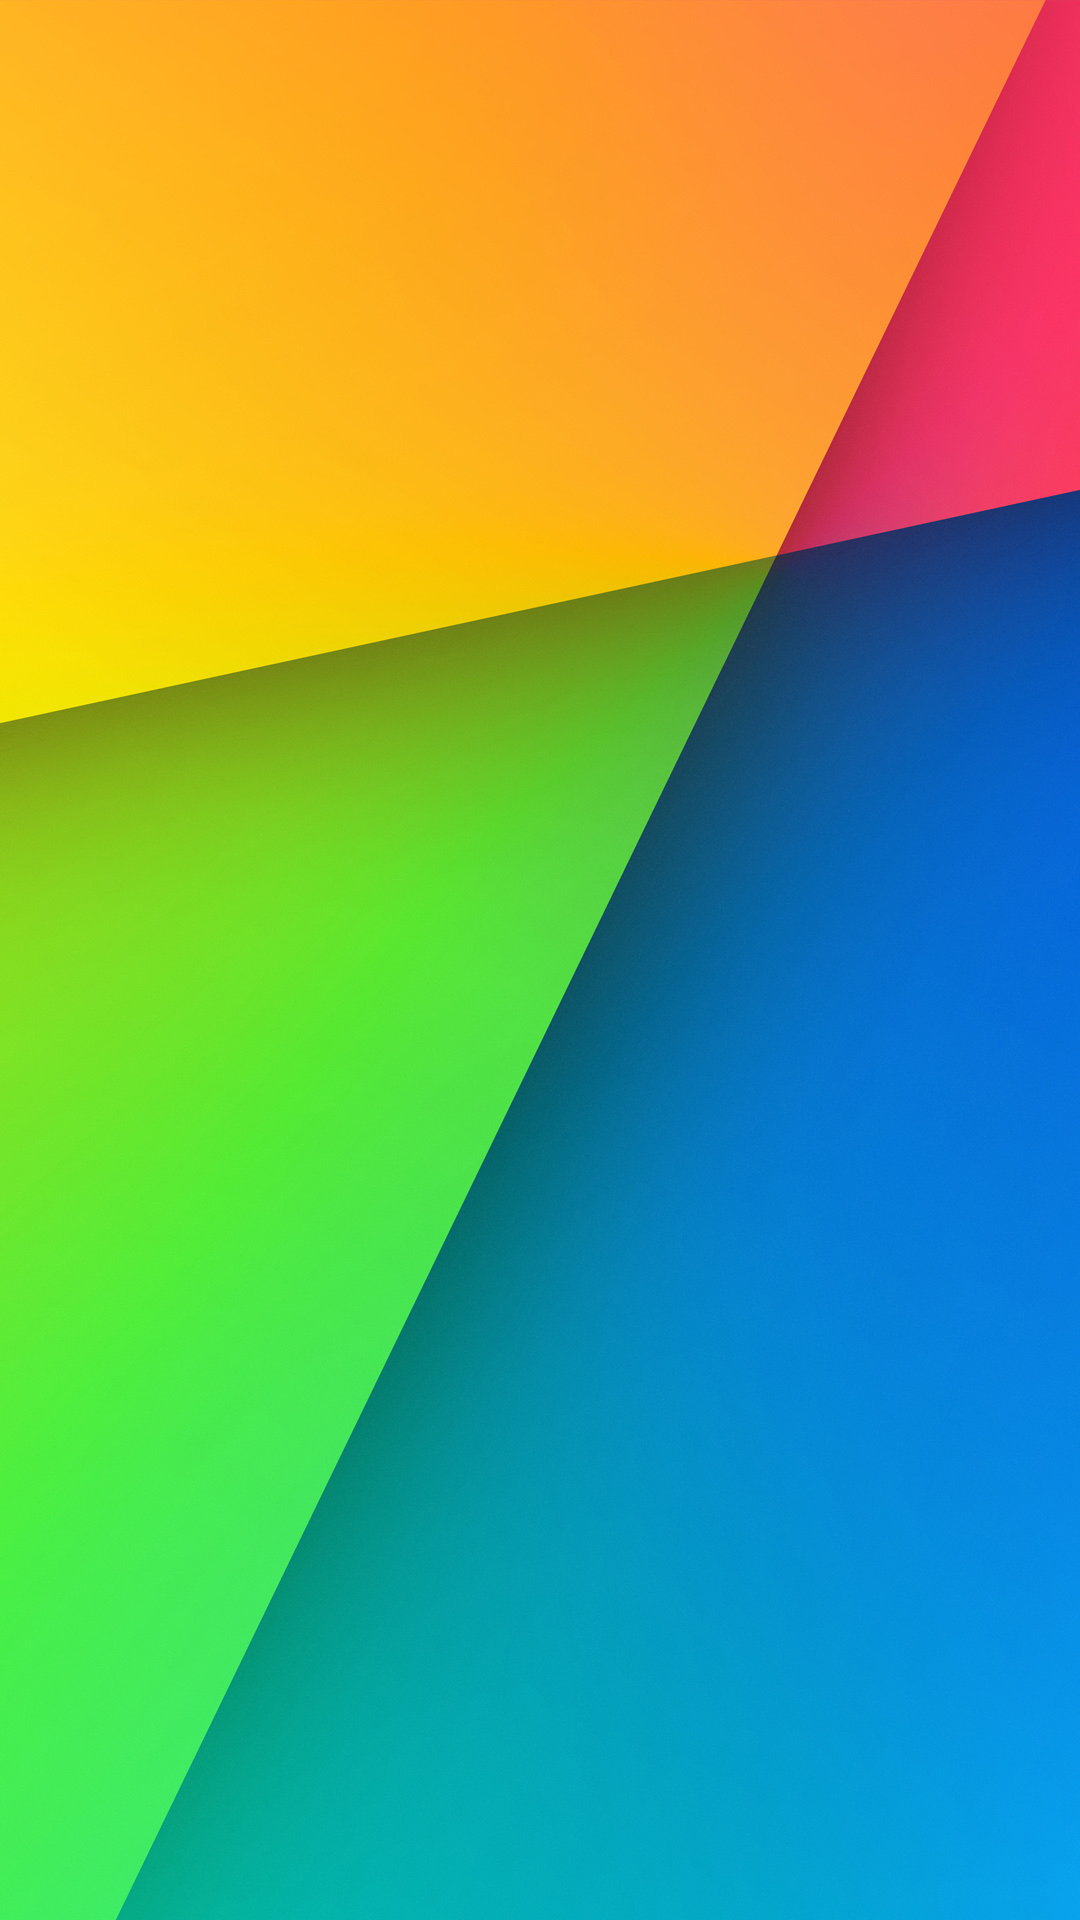 Nexus 7 Official HD Wallpaper Android Wallpaper free download